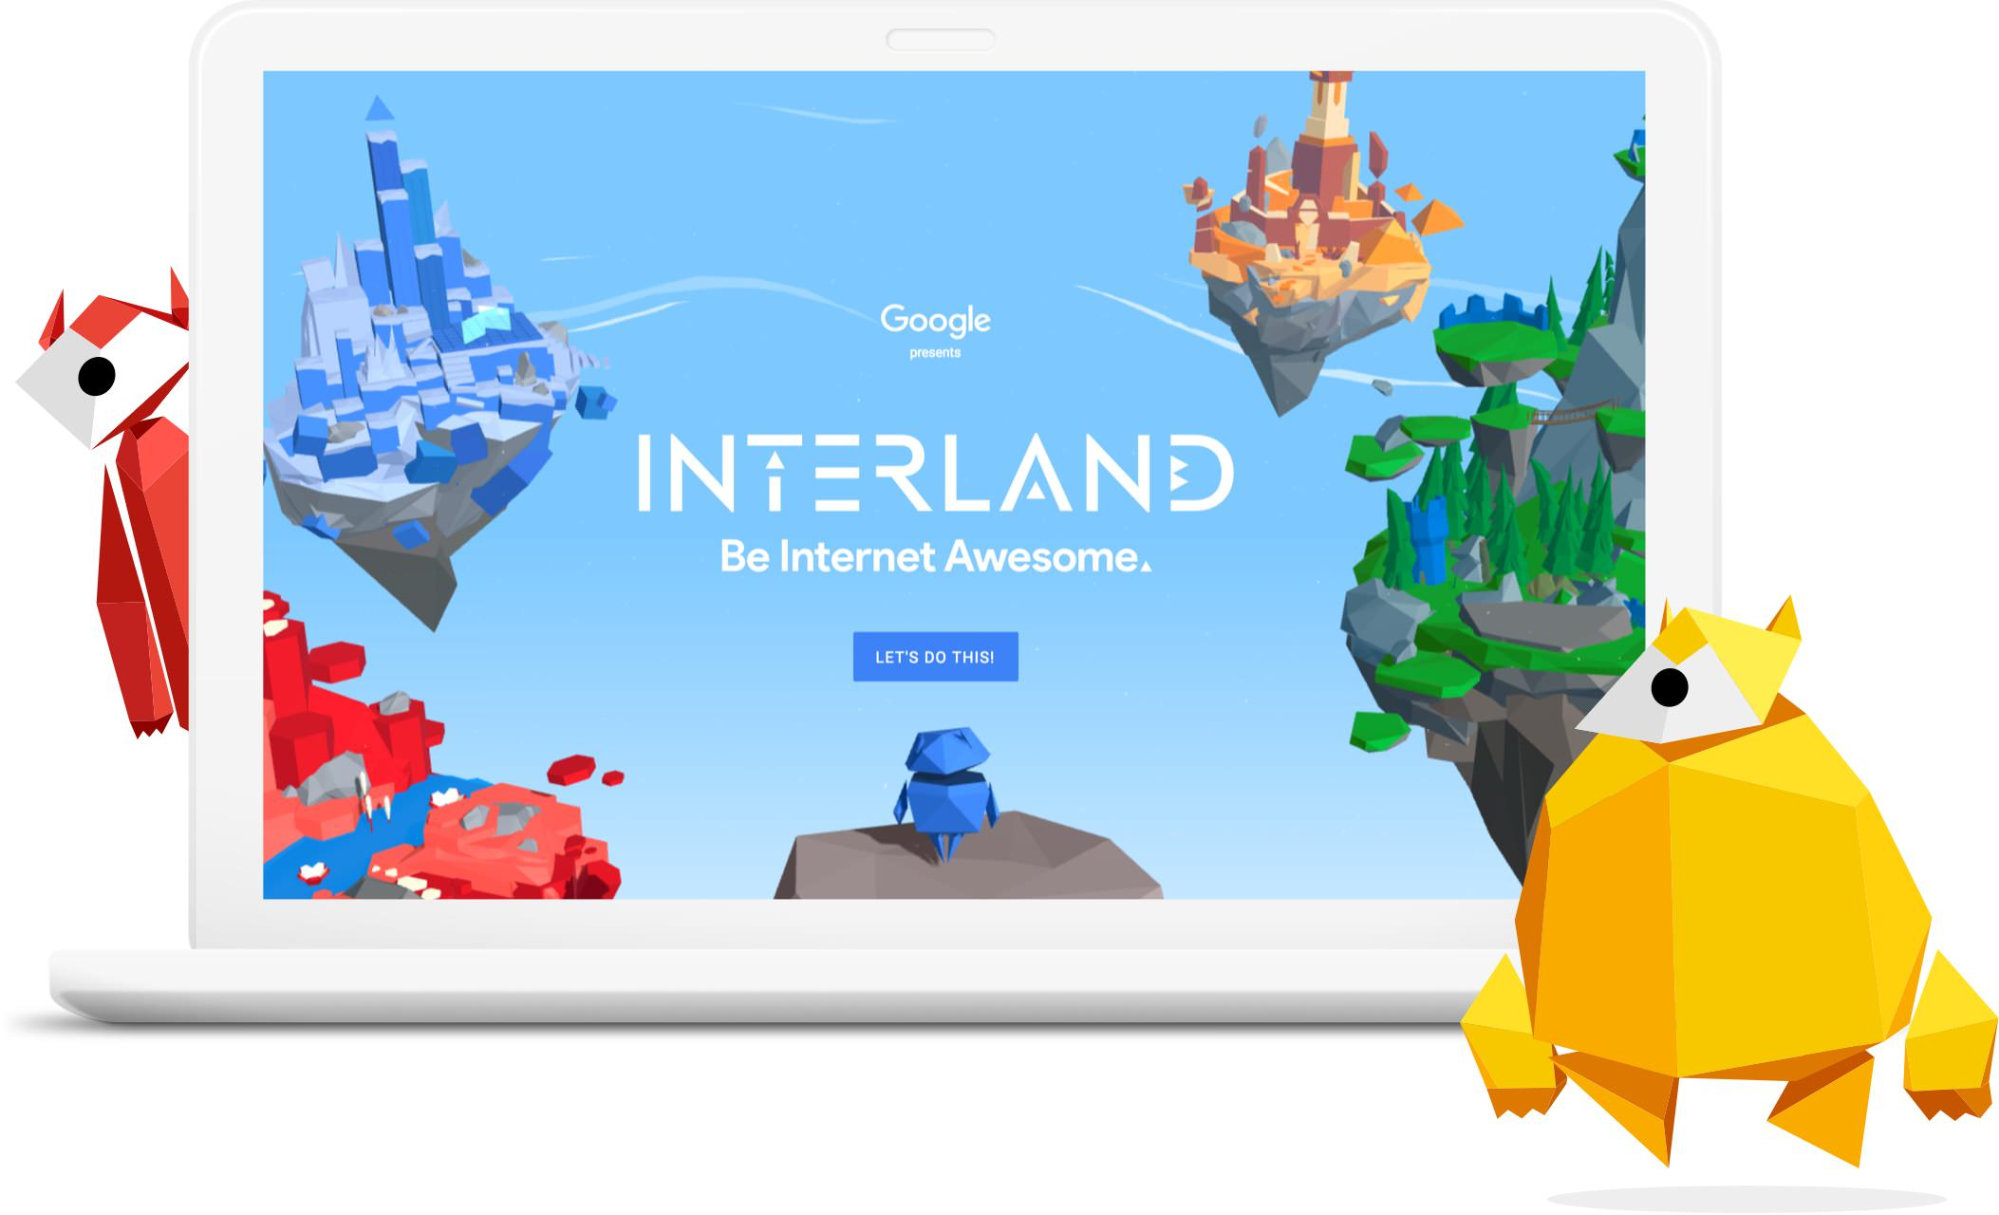 """Computer with Google's """"Be Internet Awesome"""" program on it, surrounded by cartoon characters."""